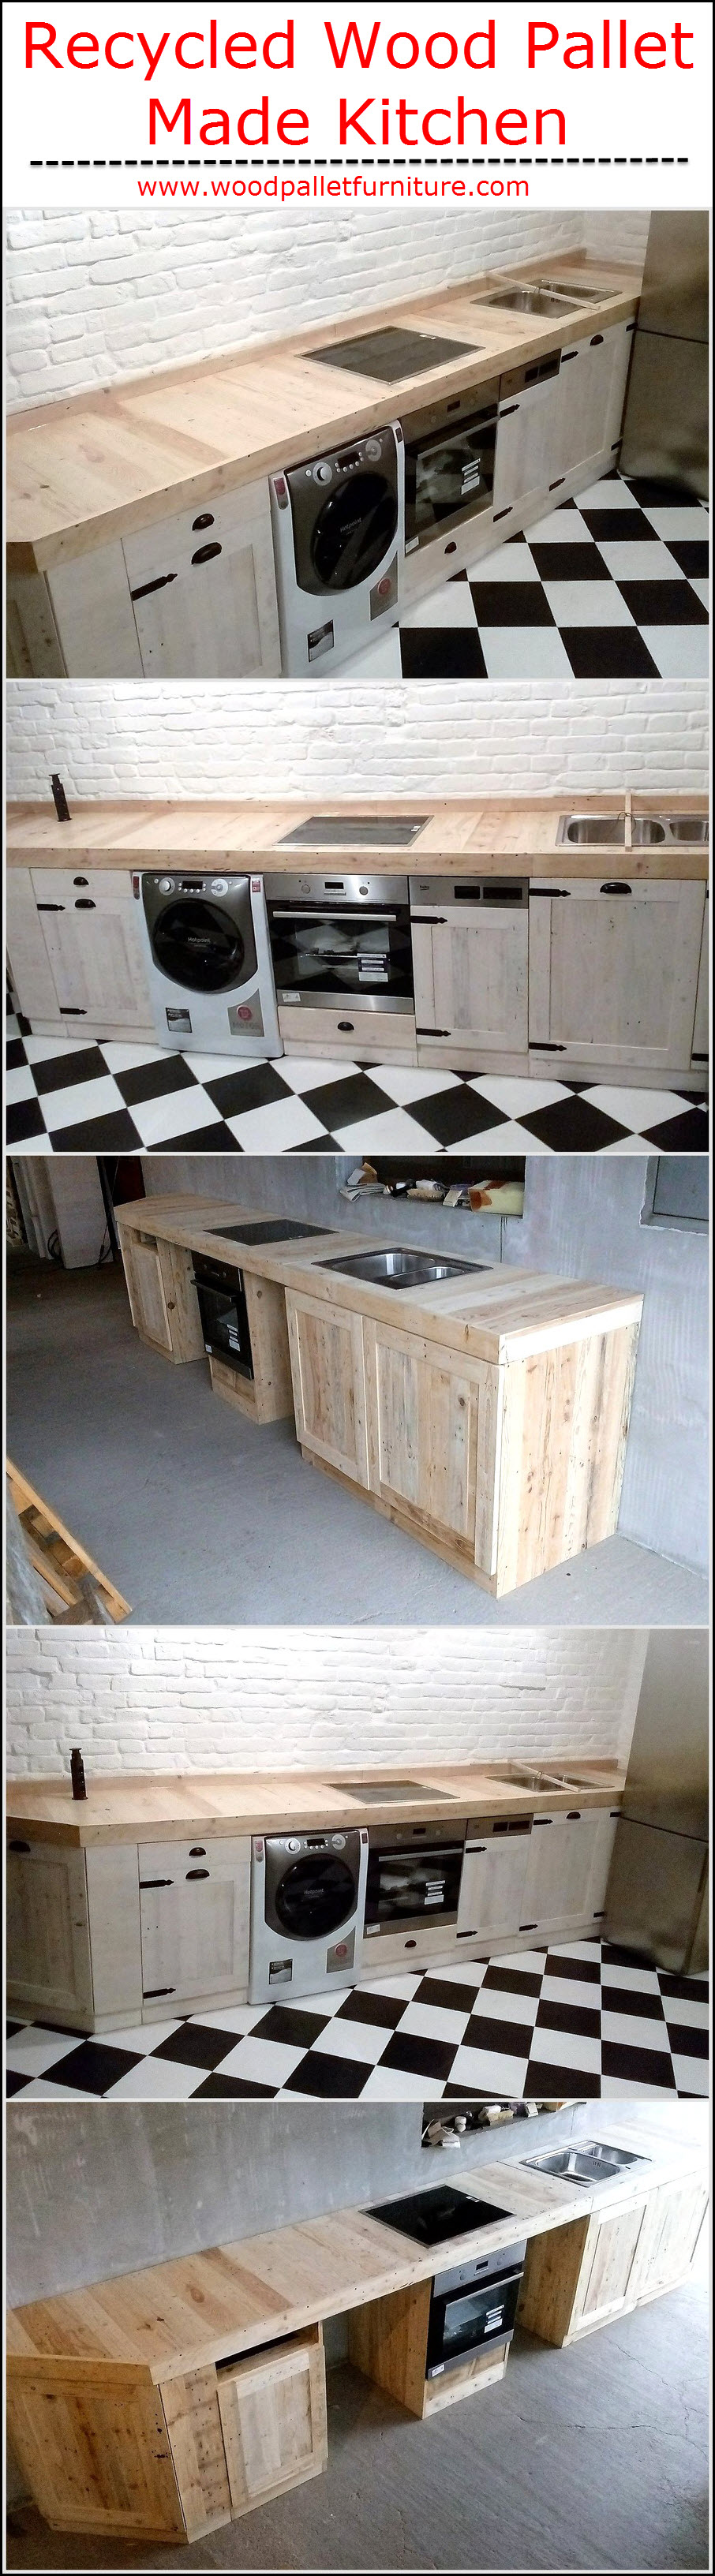 recycled-wood-pallet-made-kitchen